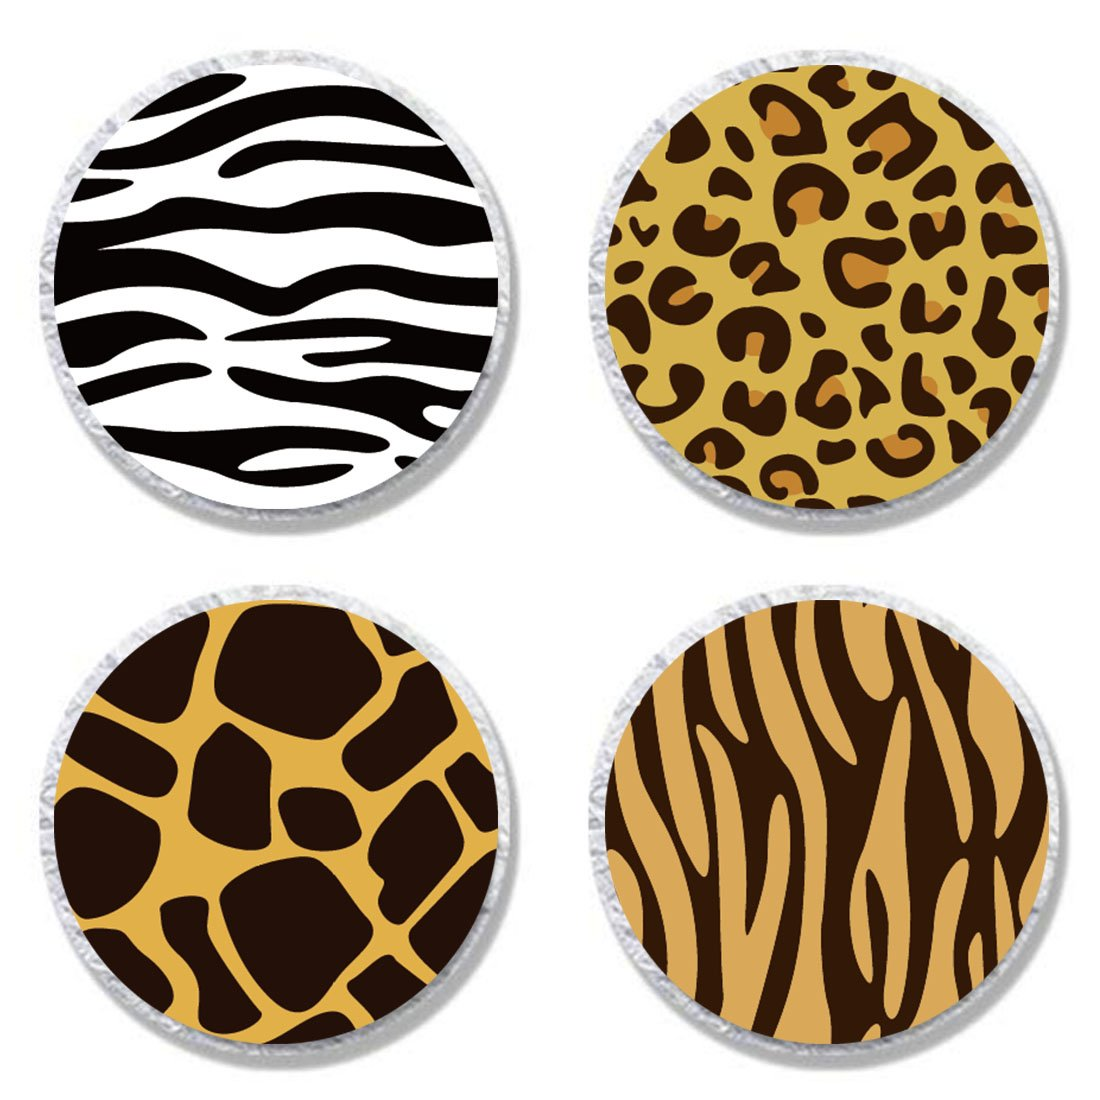 MAGJUCHE Zoo Animal Print Candy Stickers, Wild Animal Print Party Sticker Labels for Favors, Decorations, Fit Hershey's Kisses, 304 Count